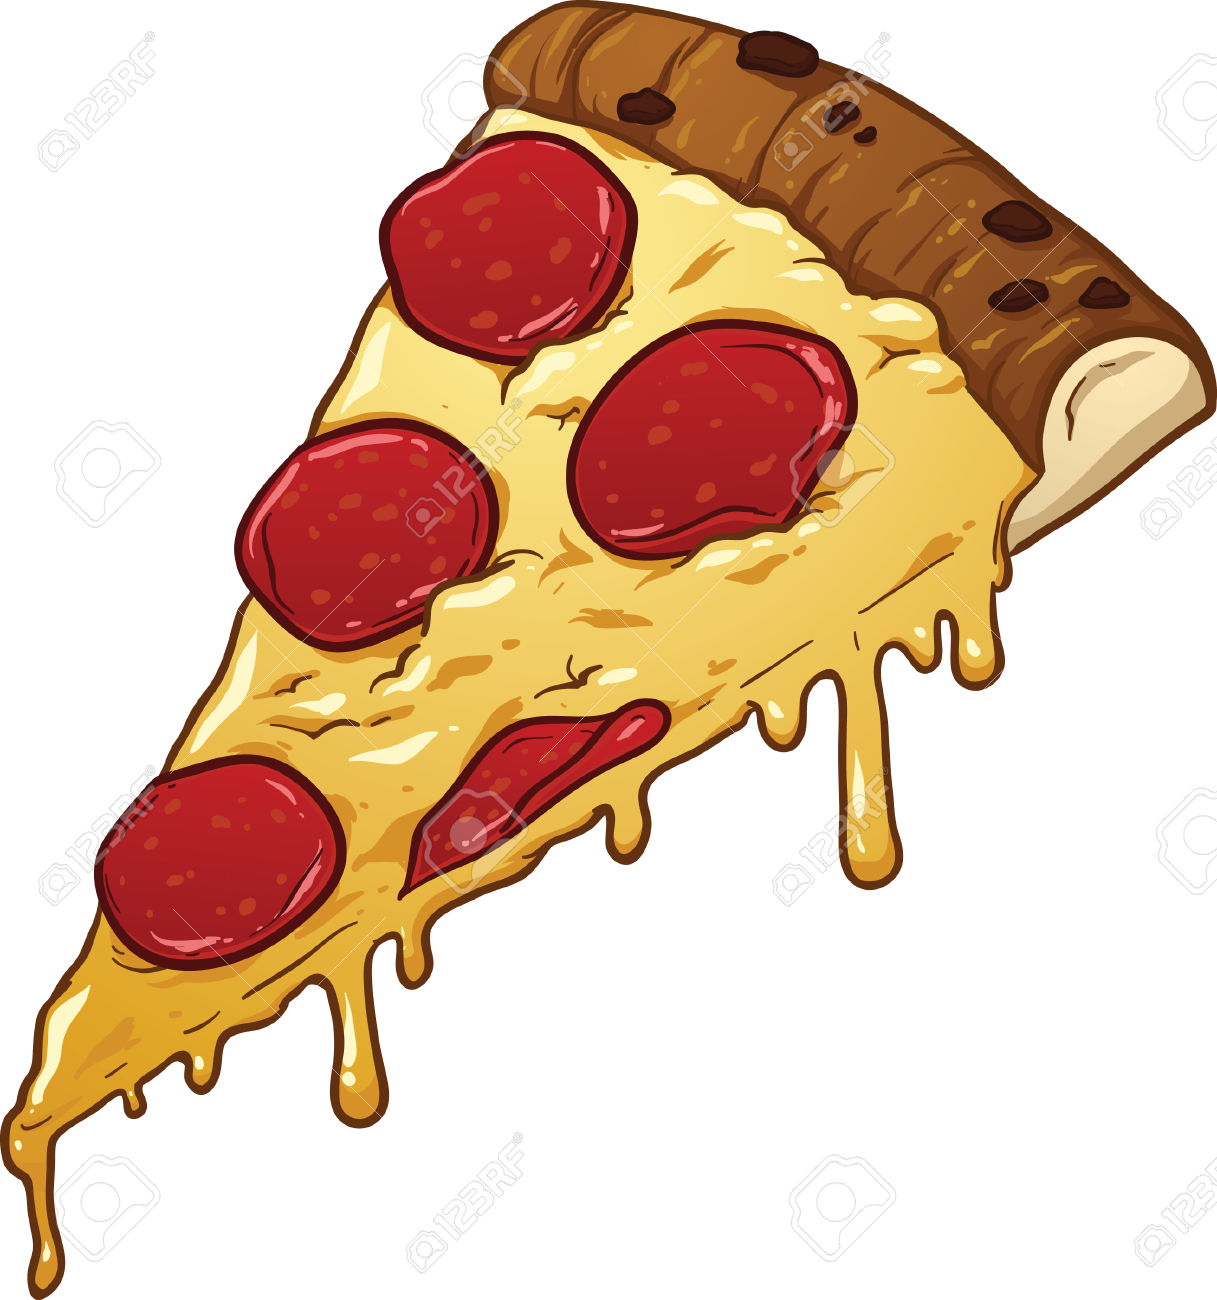 cheese pizza drawing at getdrawings com free for personal use rh getdrawings com cheese pizza clipart free cheese pizza clipart free